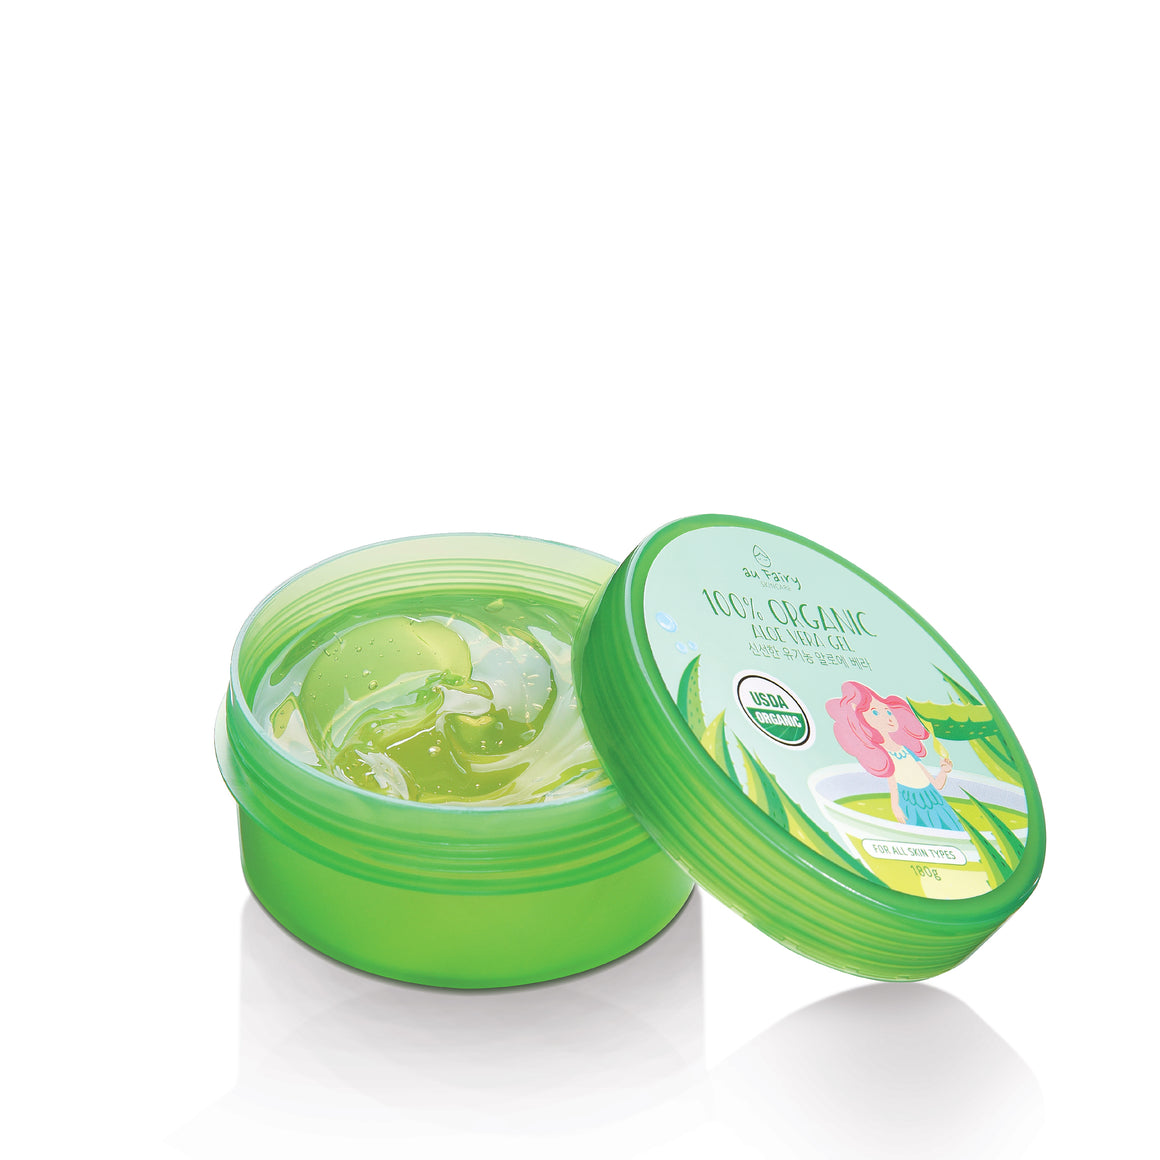 [BUNDLE PACK] AUFAIRY Soothing Spell 100% Organic Aloe Vera Gel : 3 PCS - Yoskin